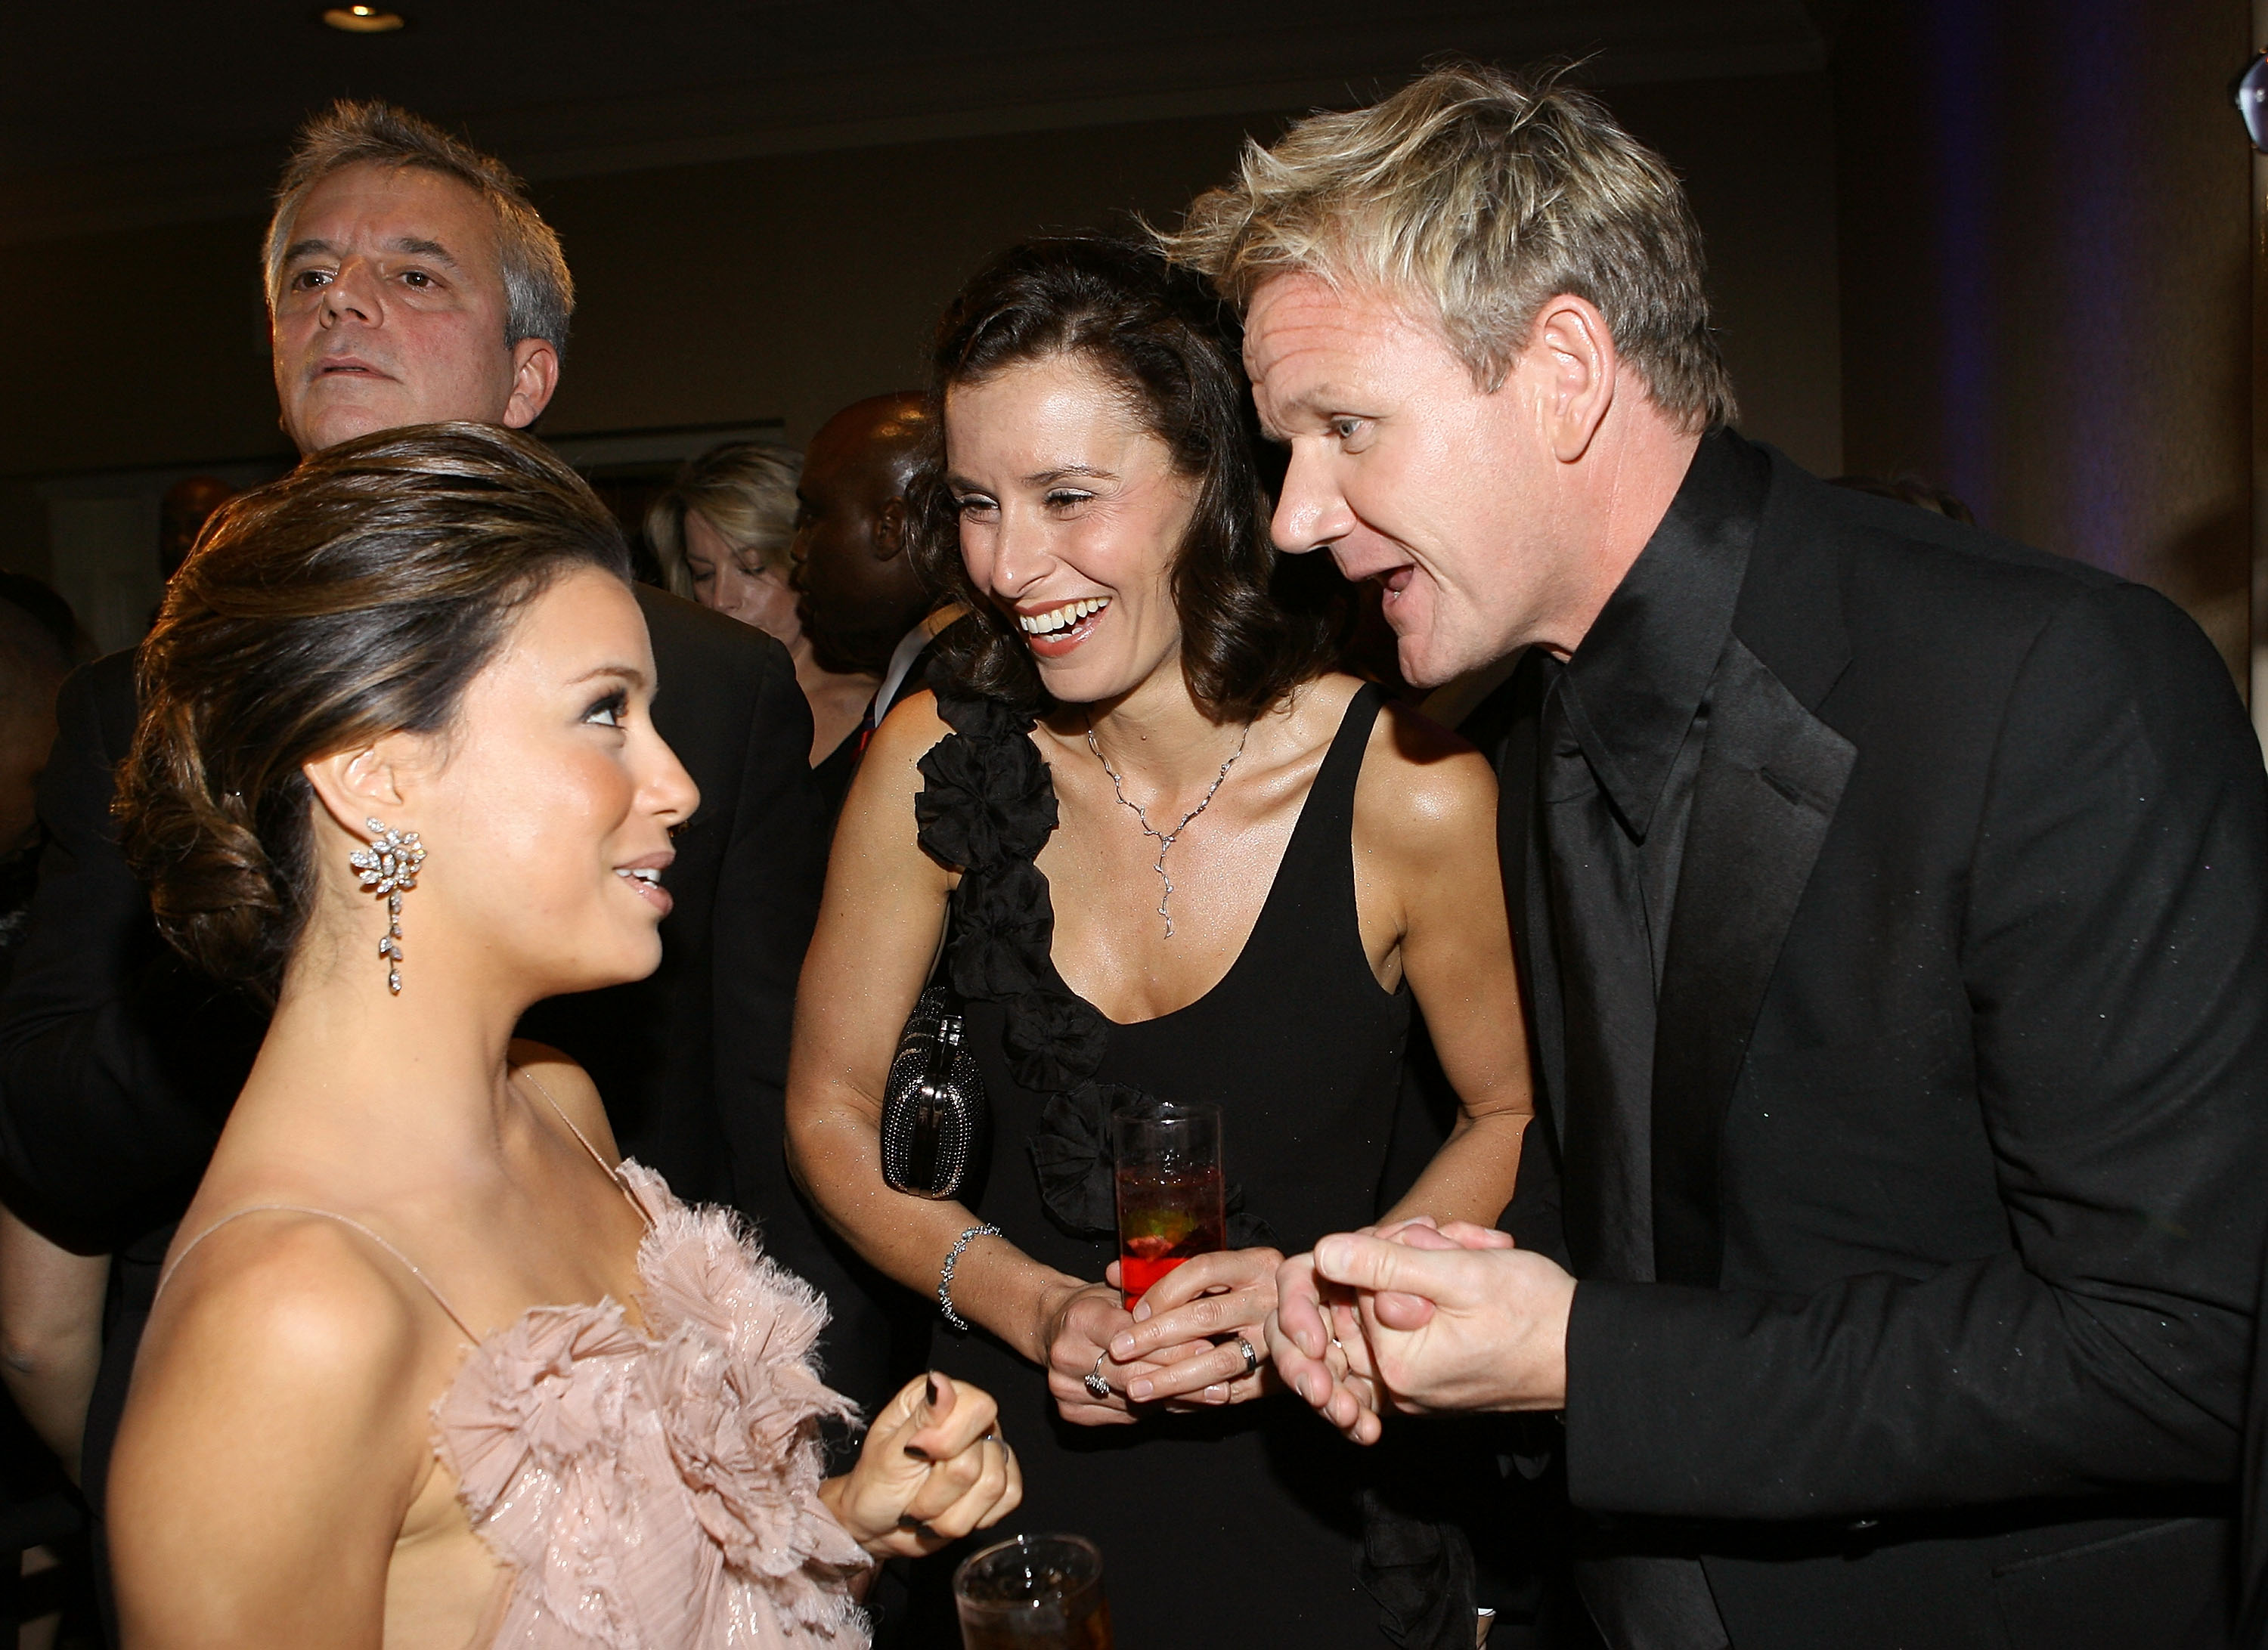 Gordon Ramsay (R) with wife Tana Ramsay and Eva Longoria Parker (L) attend the PEOPLE-TIME-FORTUNE-CNN White House Correspondents dinner cocktail party at Hilton Hotel on May 9, 2009 in Washington, DC. (Photo by Michael Tran/Getty Images for Time)